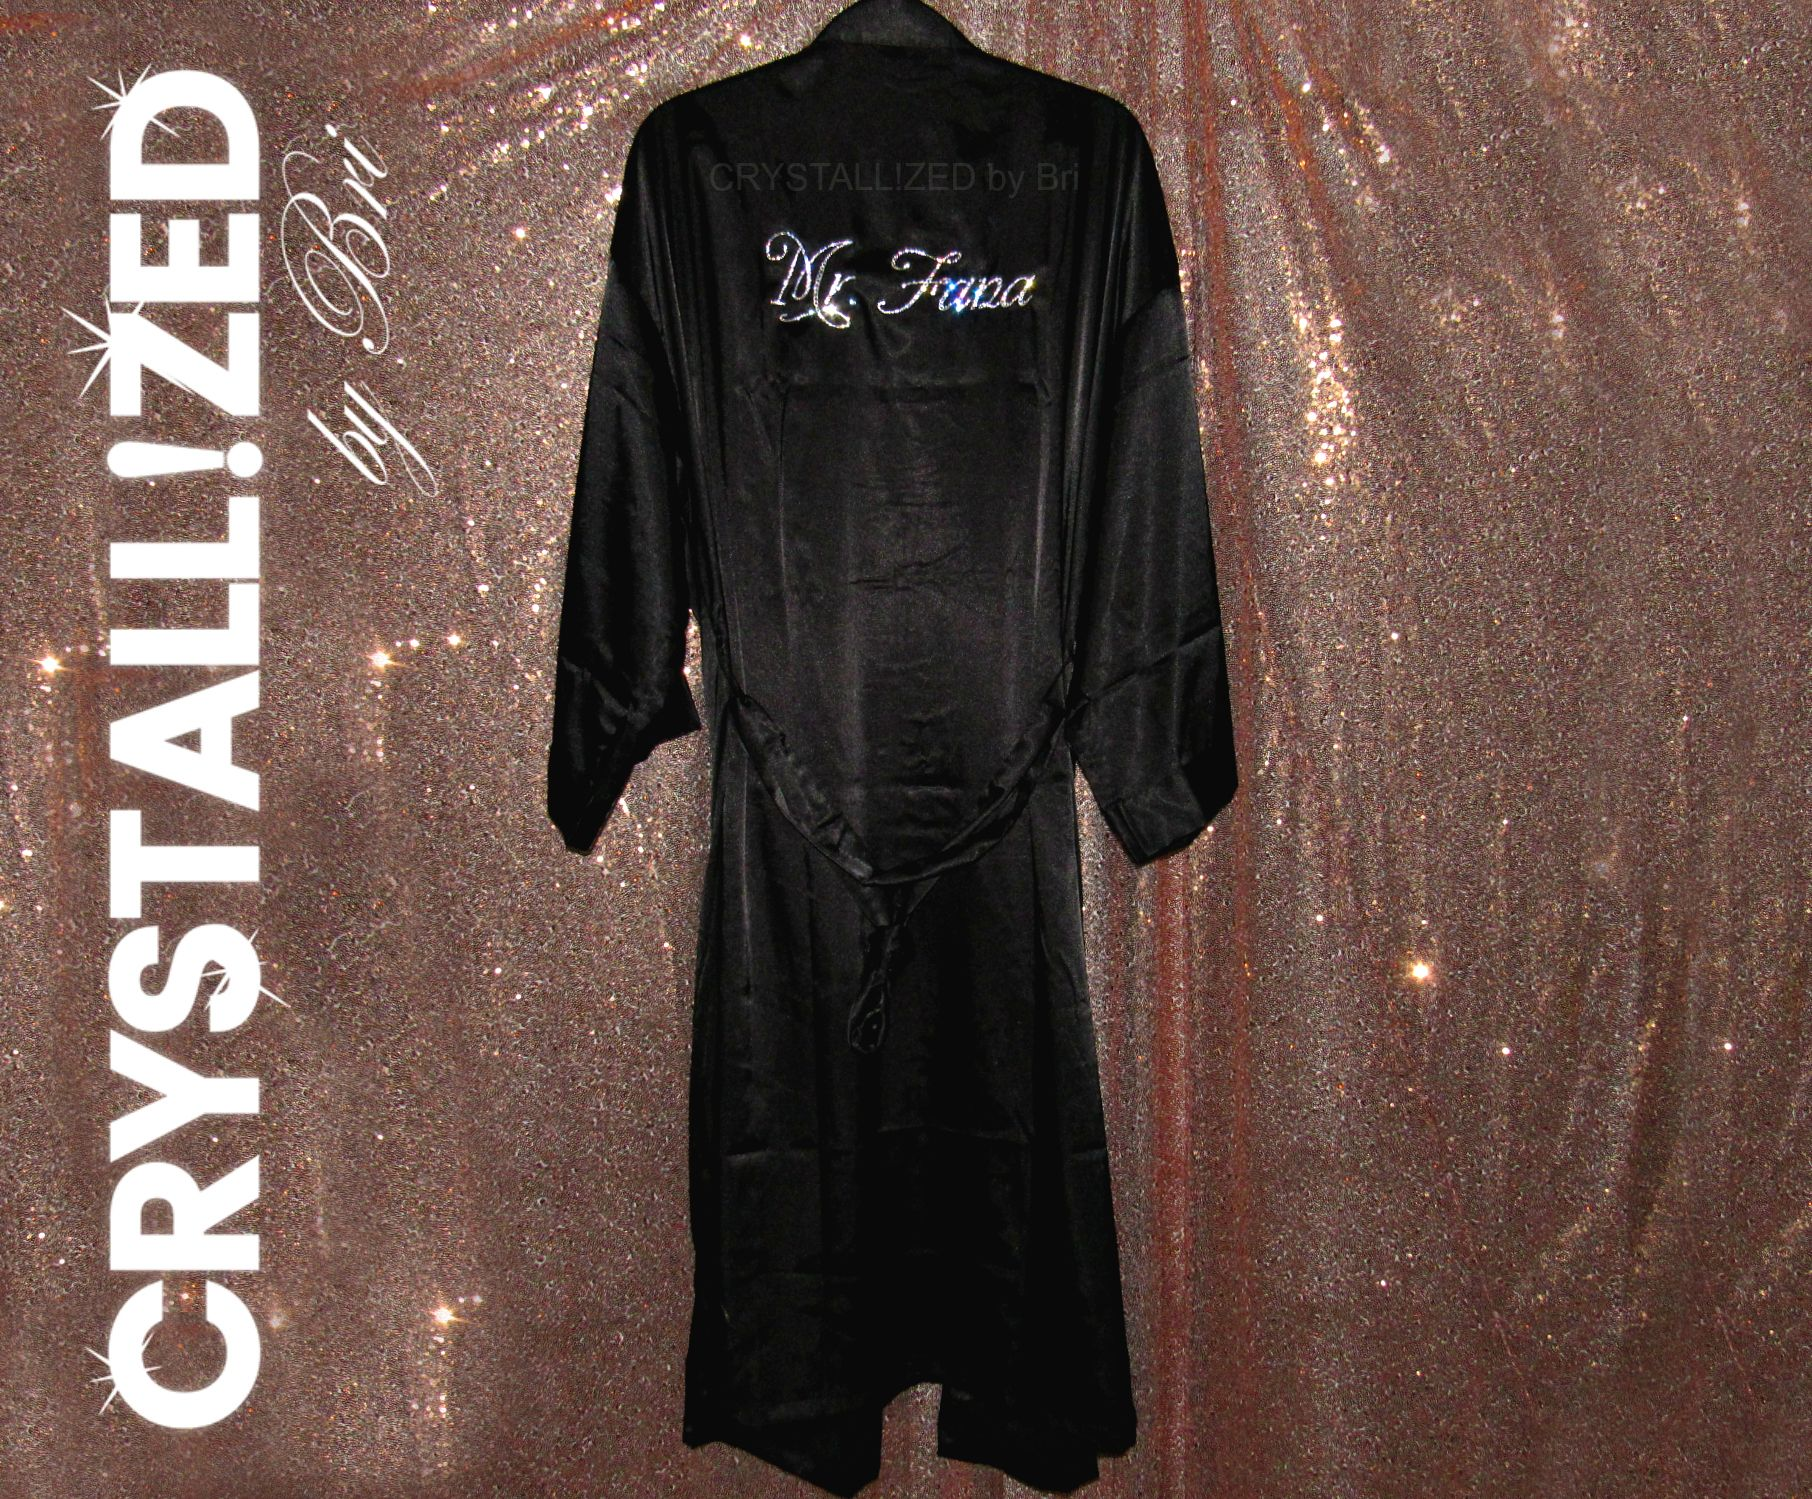 62234aa2d2 Custom Made Custom Personalized Crystallized Groom s Robe Wedding Made With Swarovski  Crystals